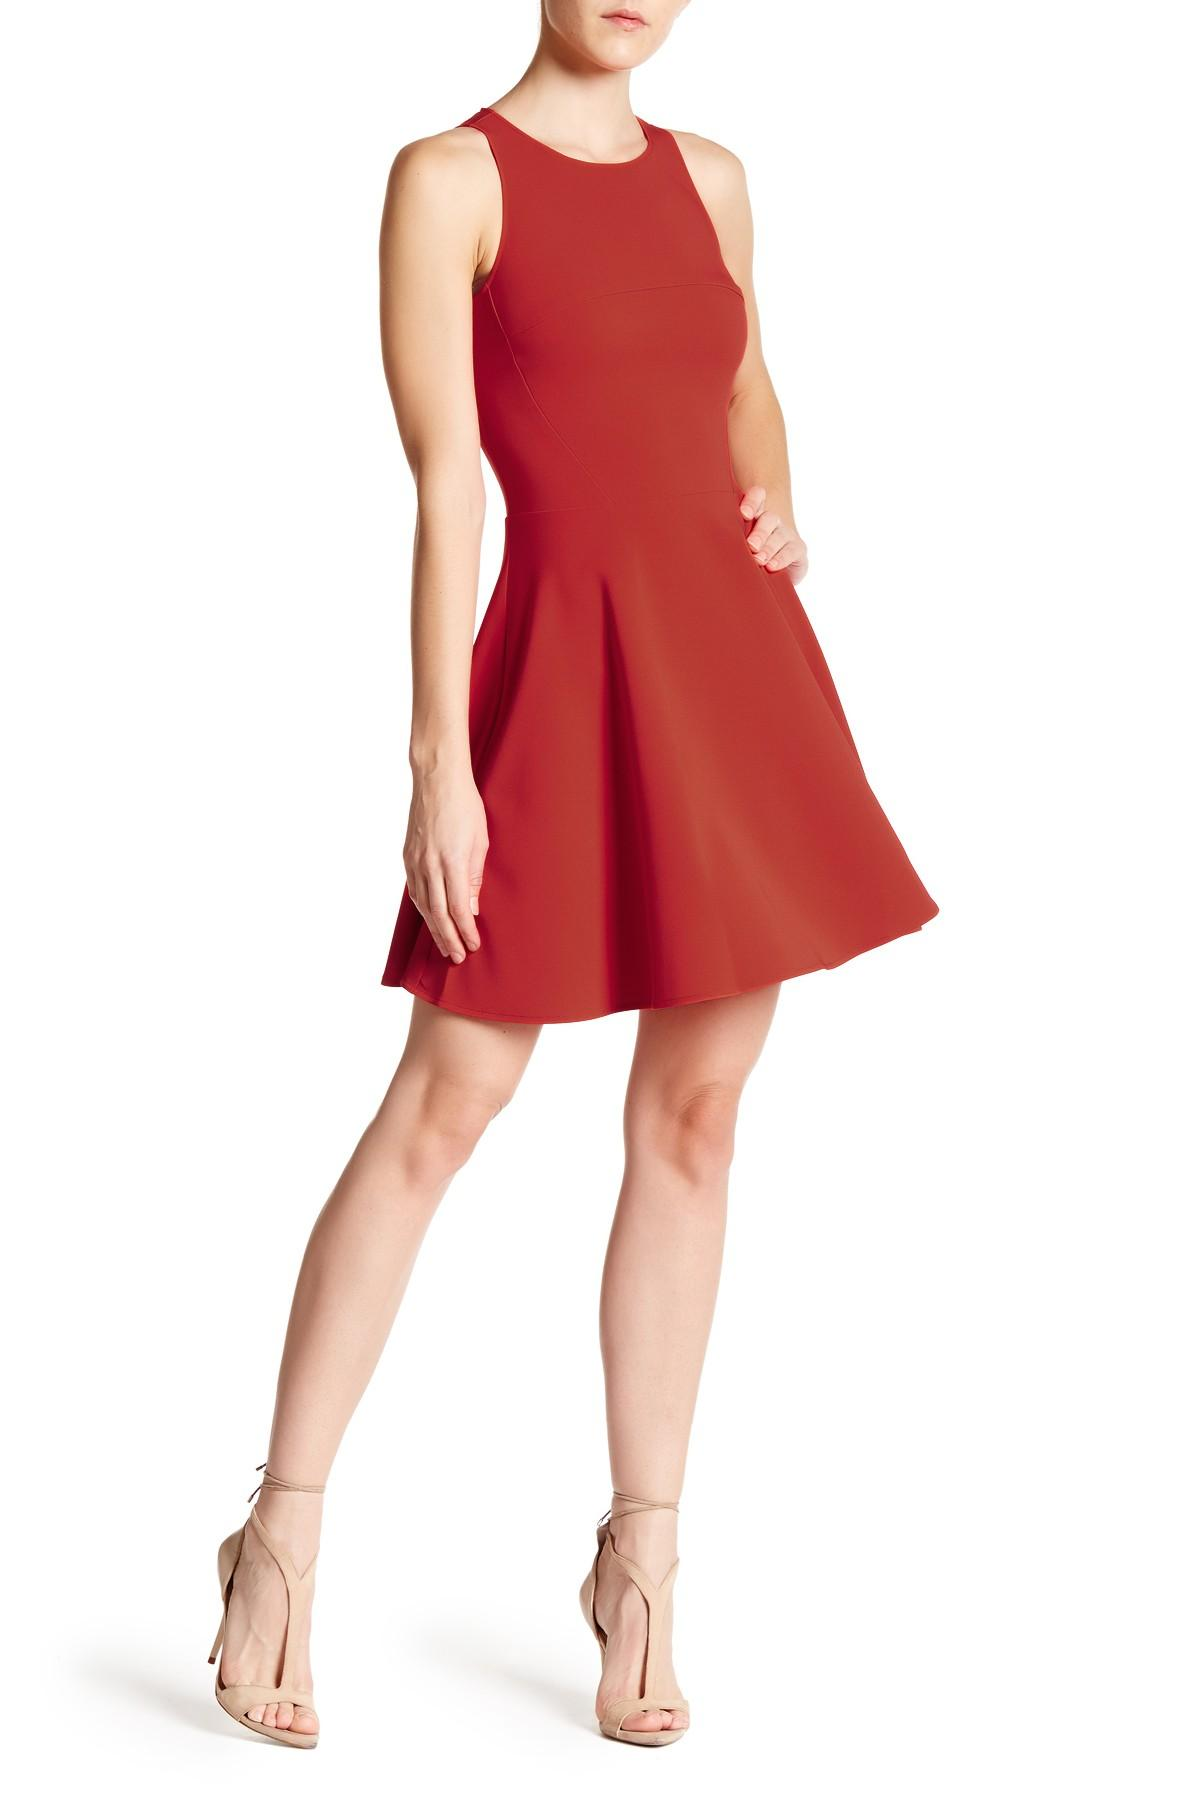 Maria bianca nero miranda dress in red lyst for Nordstrom rack dresses pour mariage